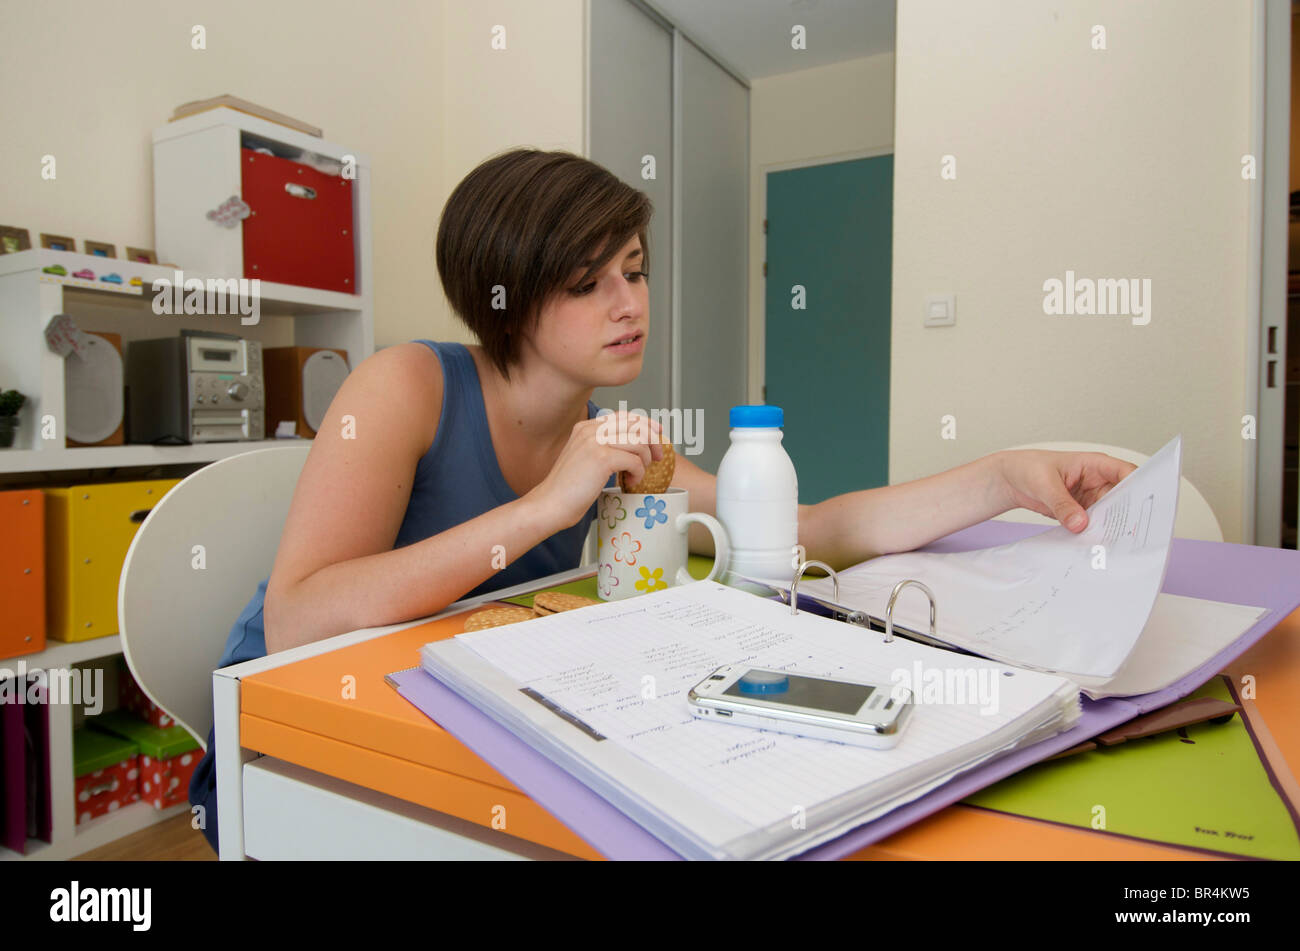 Student studying / revising in her university / college apartment with her breakfast - Stock Image